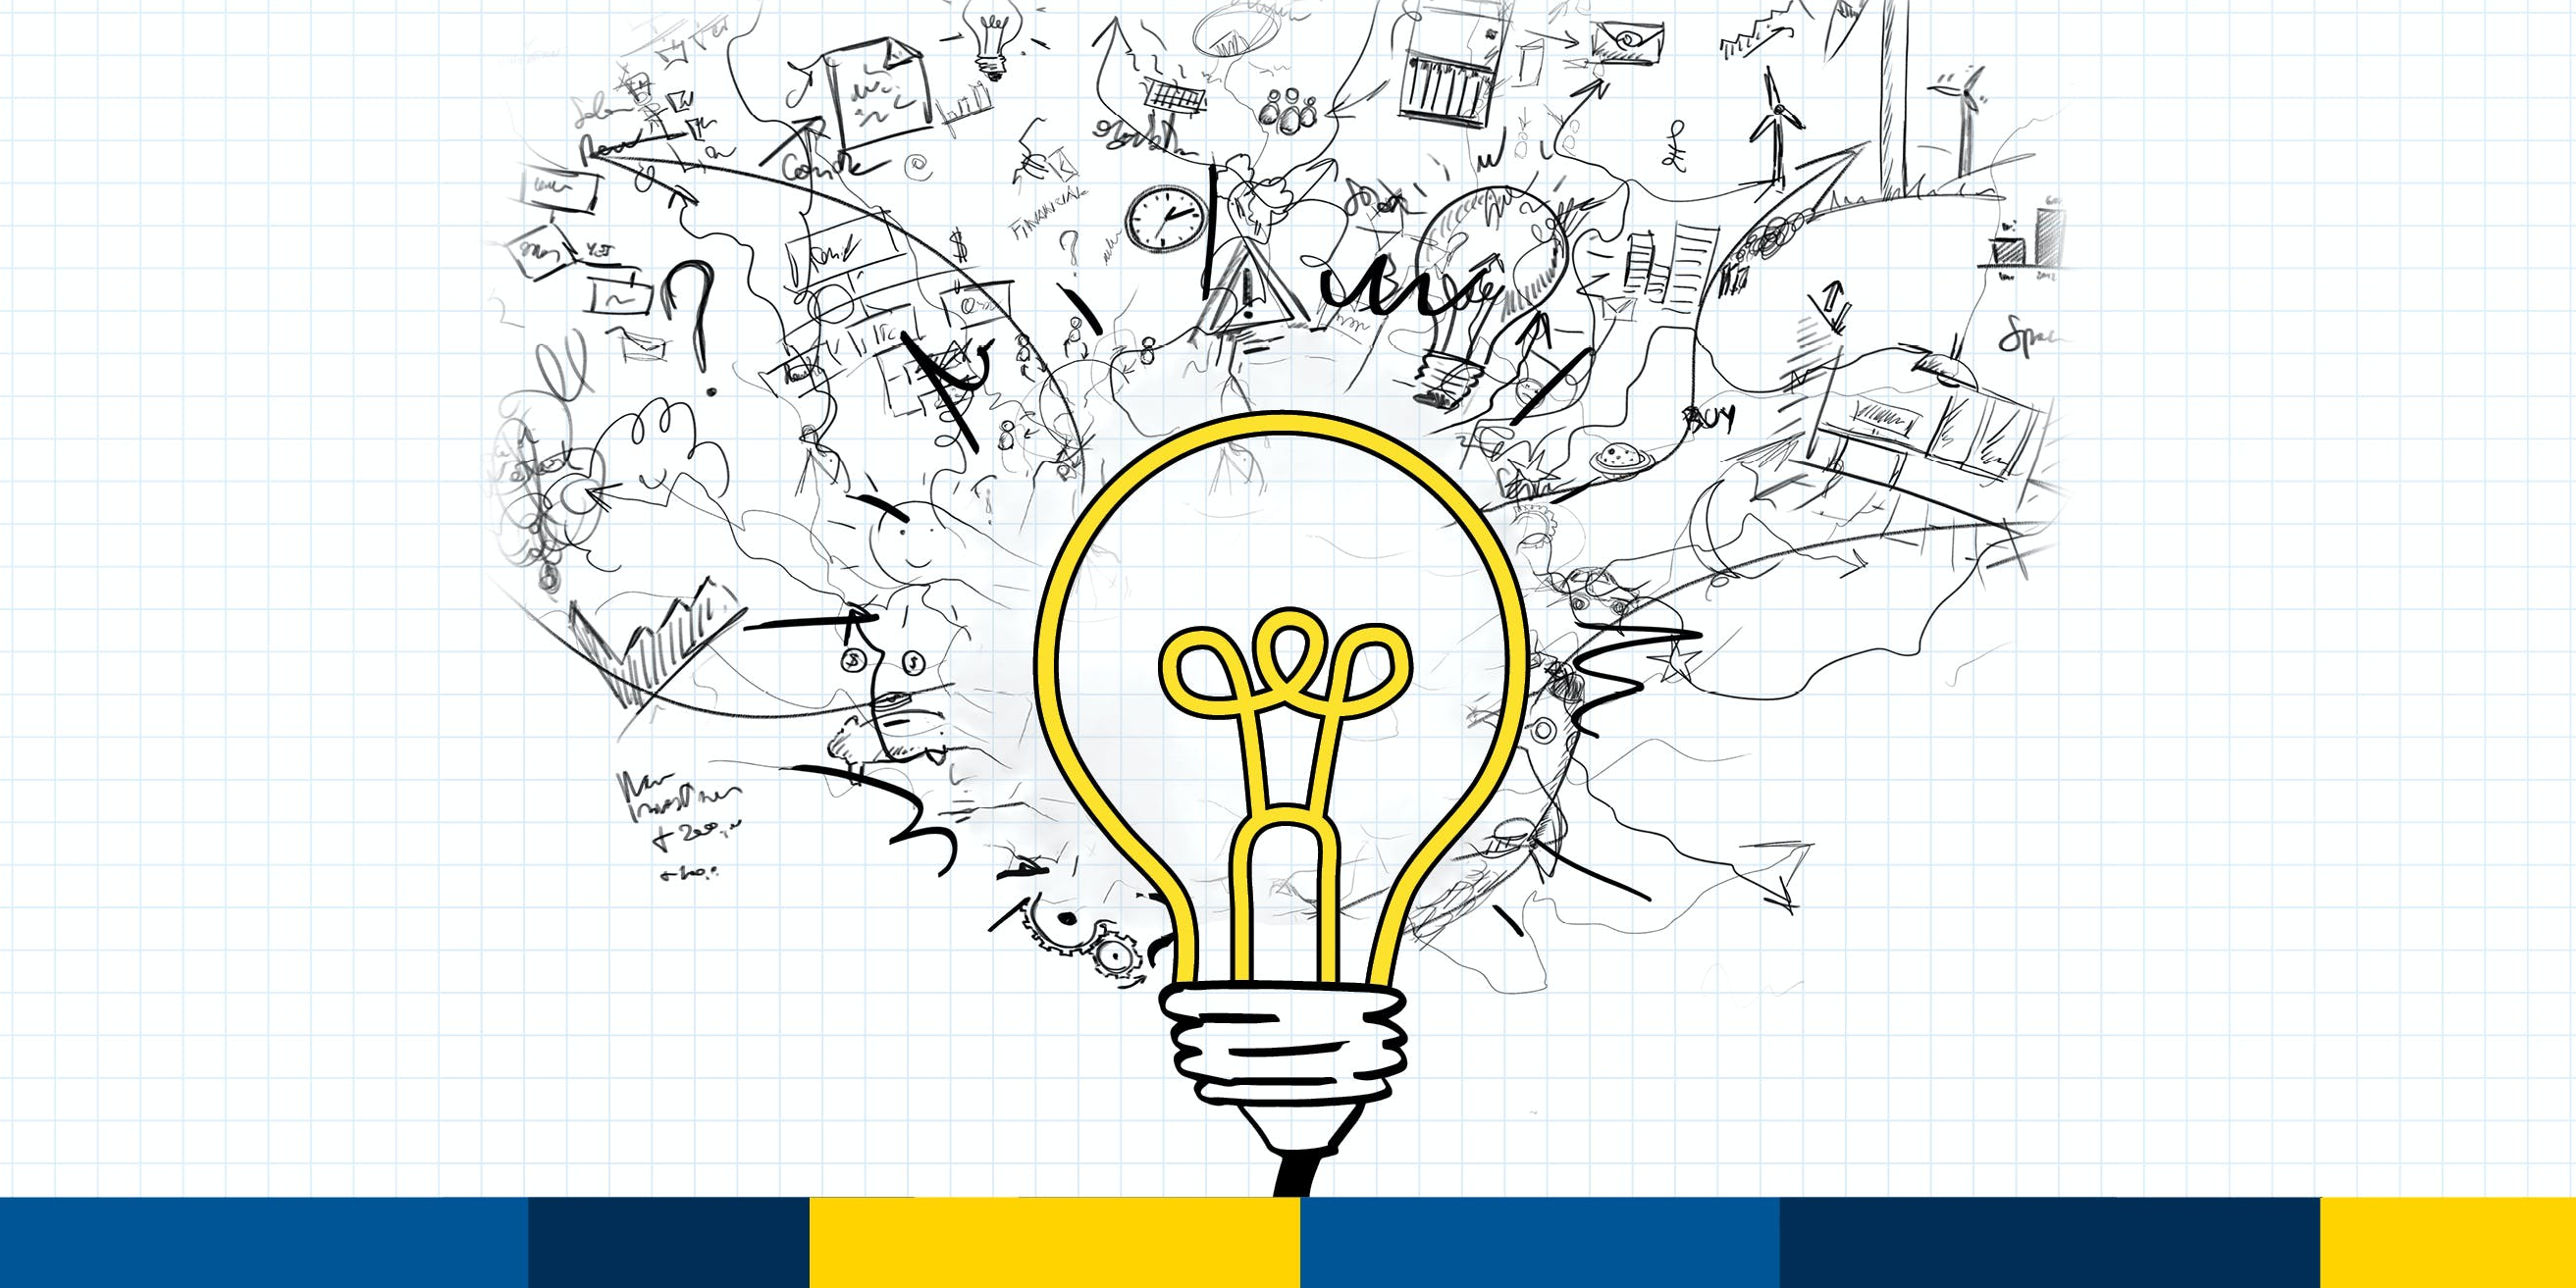 Graphic depicting a light bulb that is generating ideas.